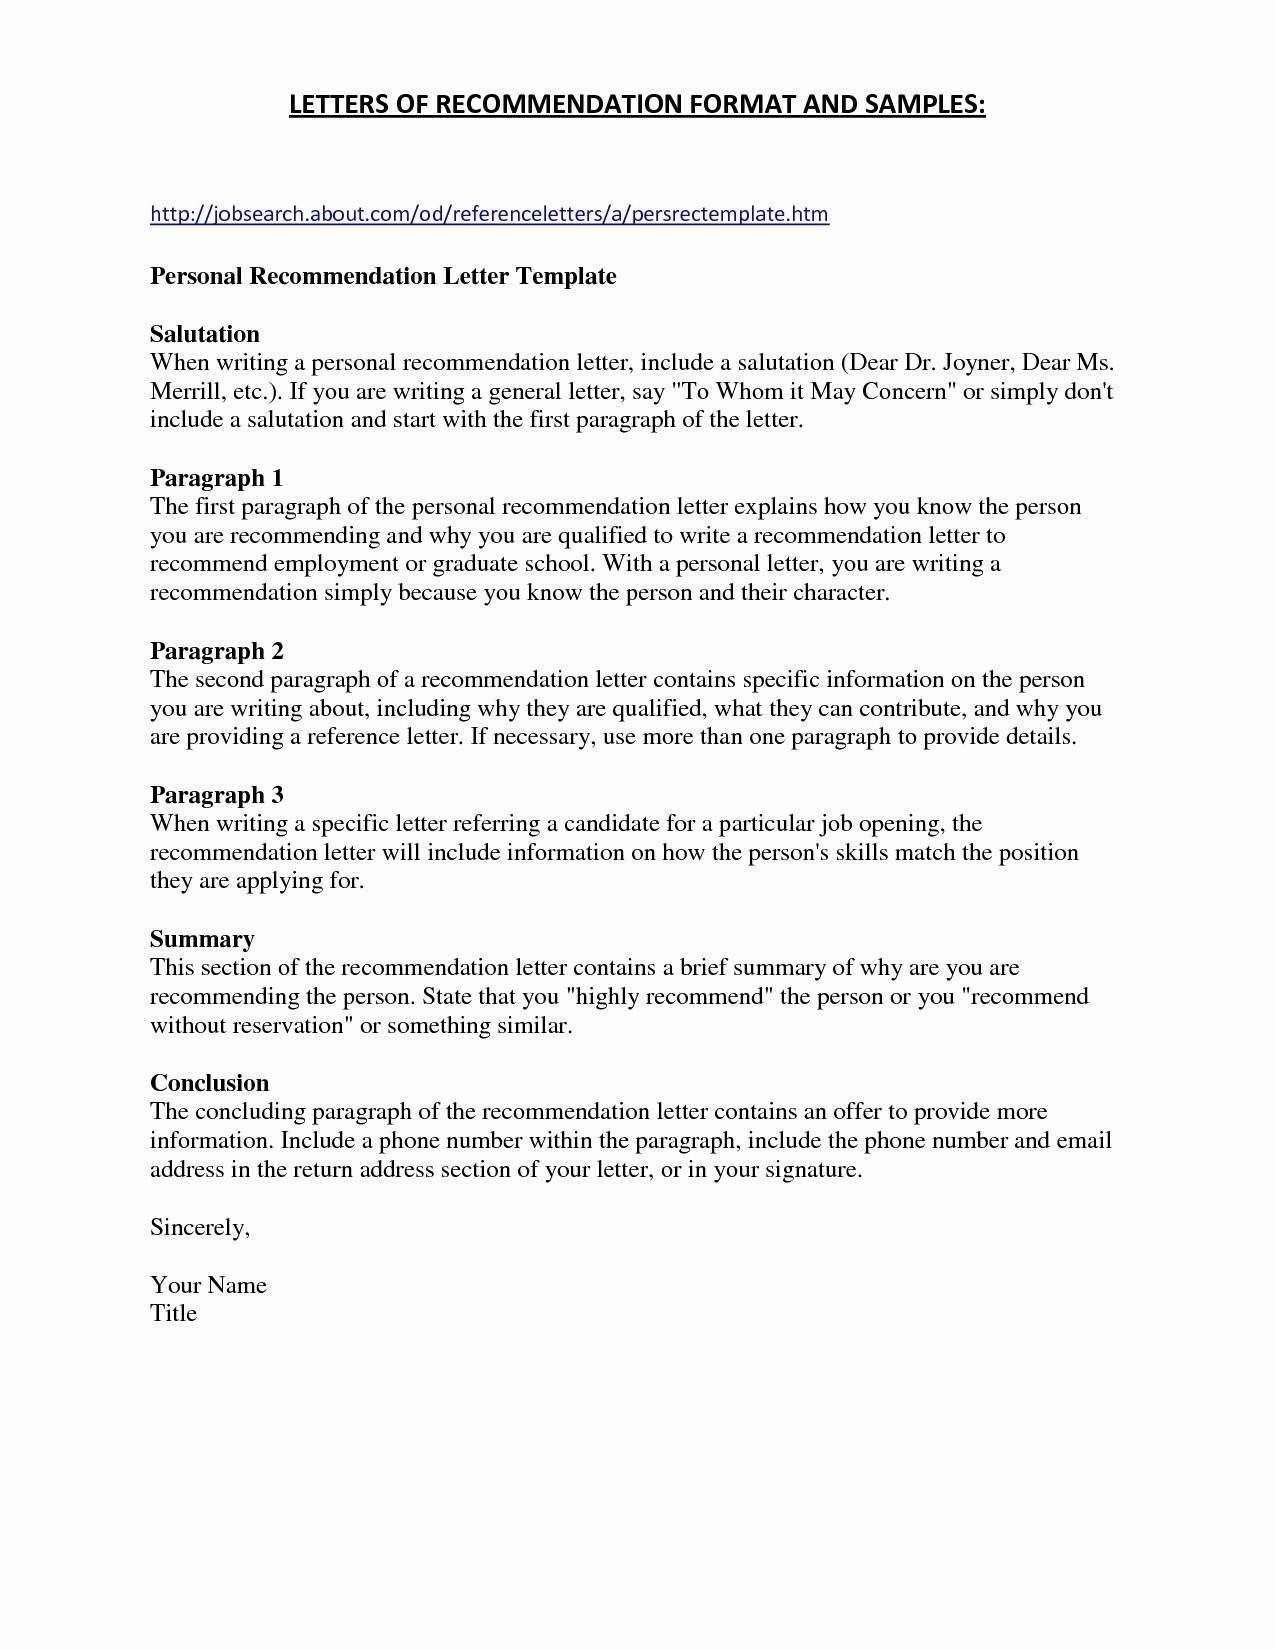 Bad Check Letter Template - How to Write A Cover Letter for A Rental Application